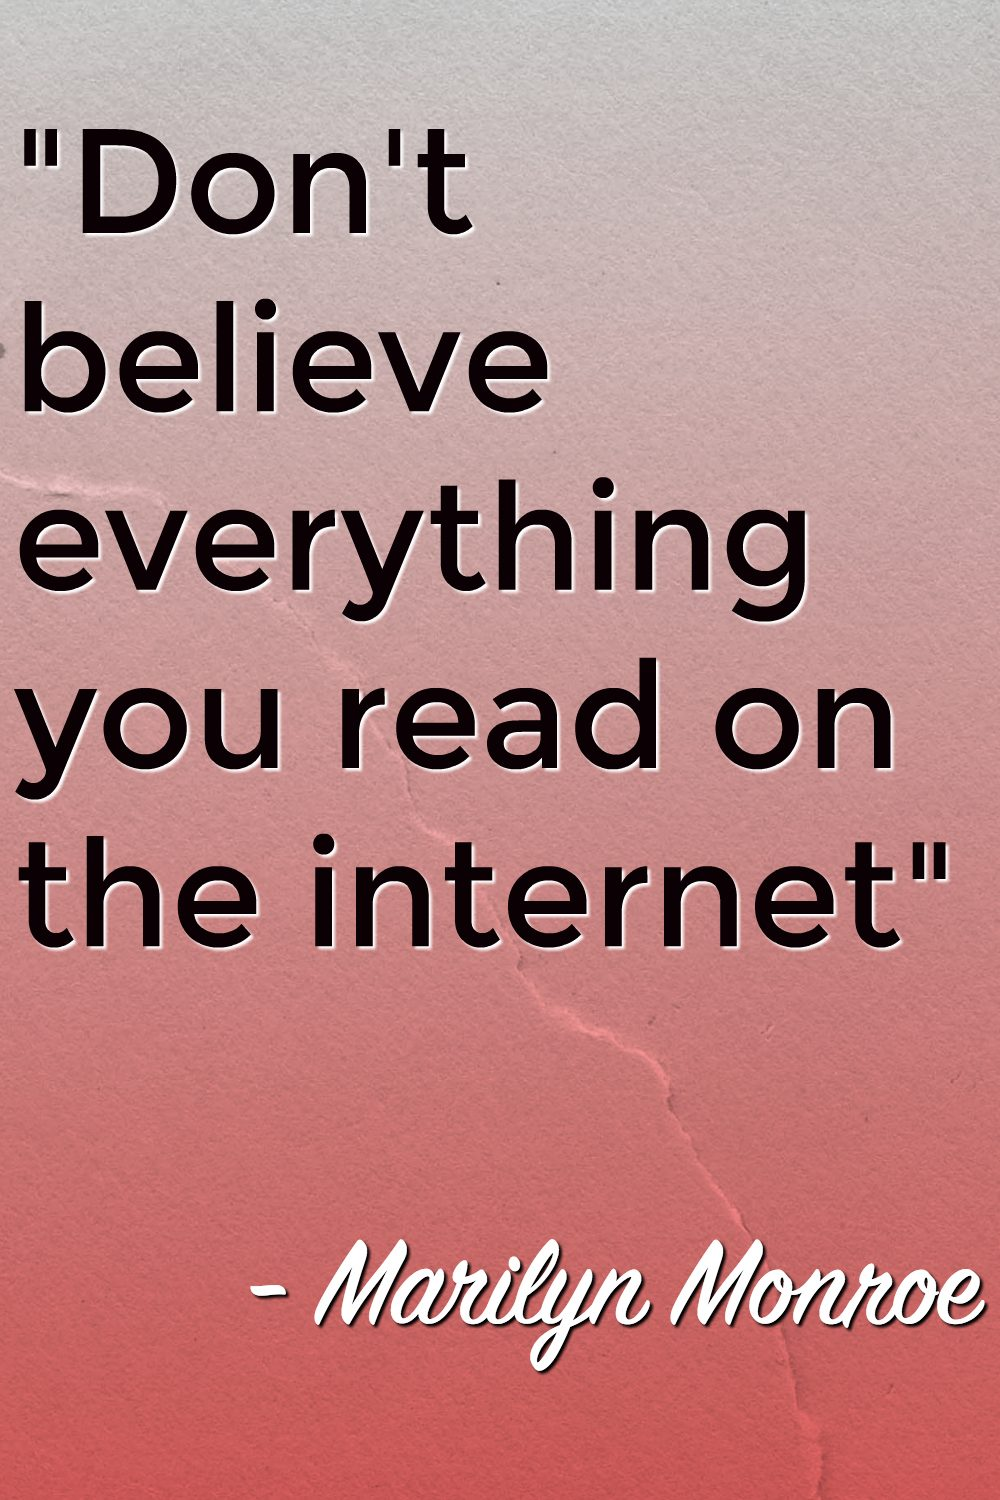 Don't believe everything you read on the internet quote